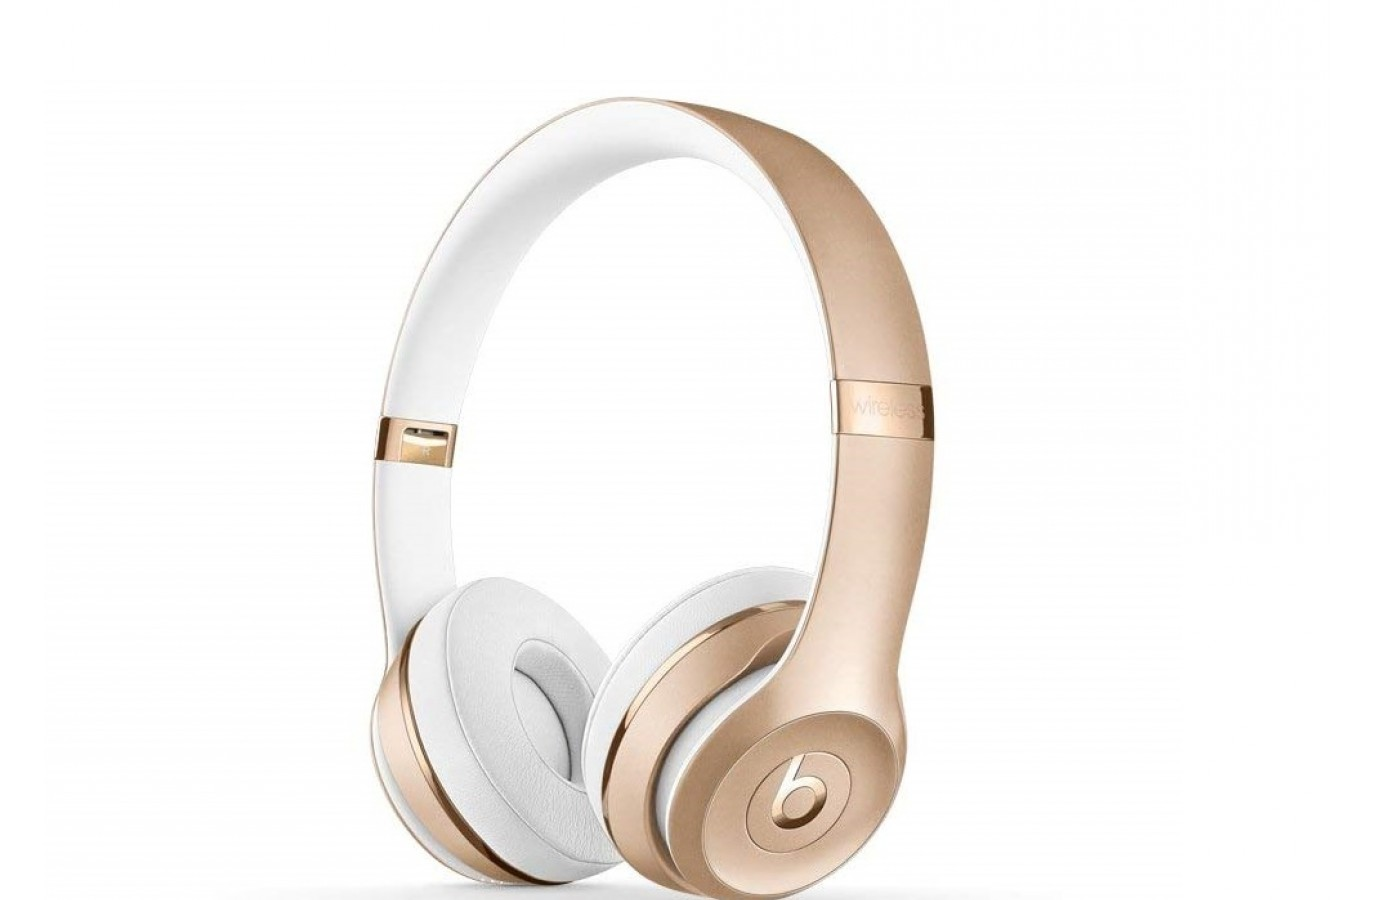 The Beats Solo 3 offers up to 40 hours of battery life.